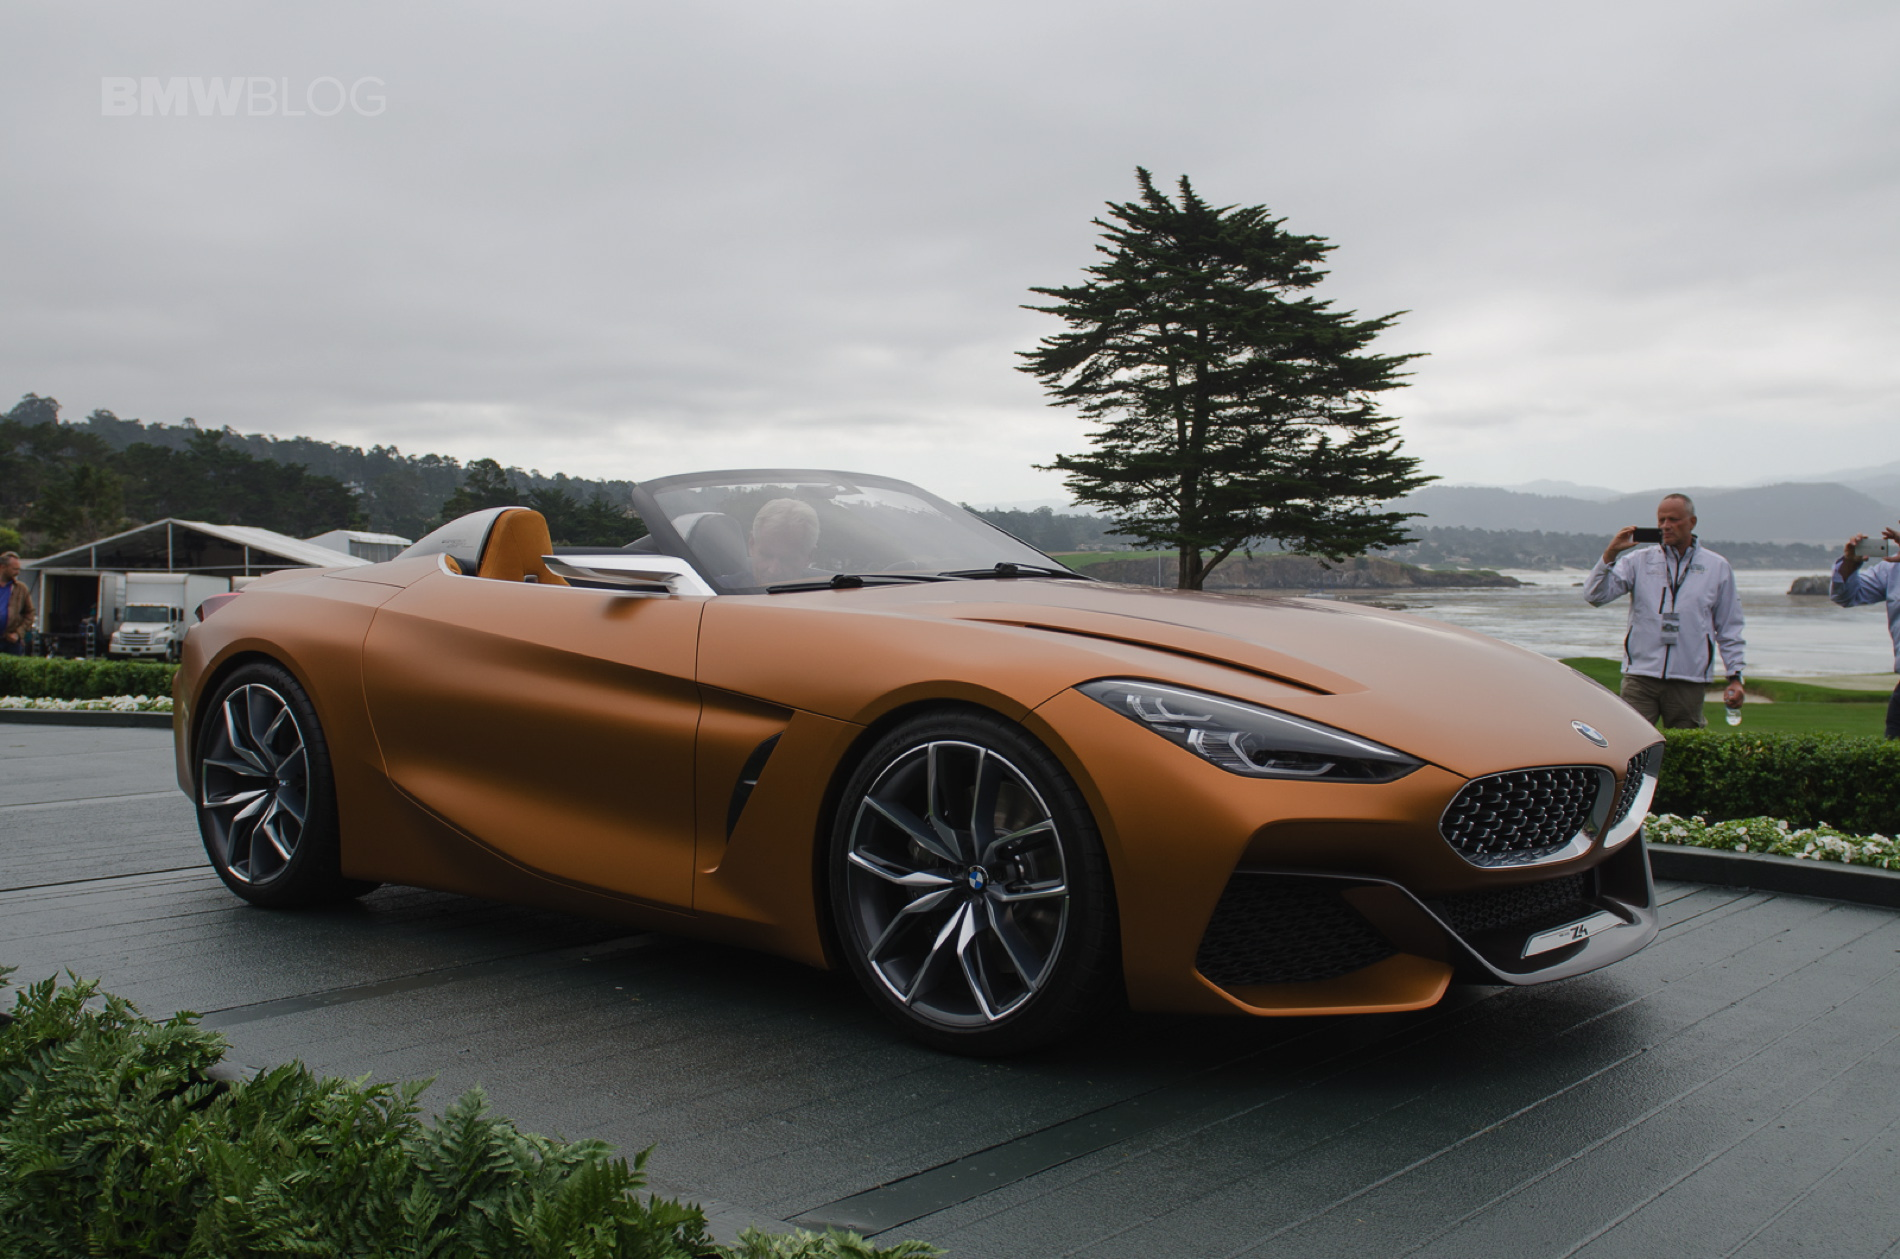 What BMW Concept Z4 styling cues will make it to production?